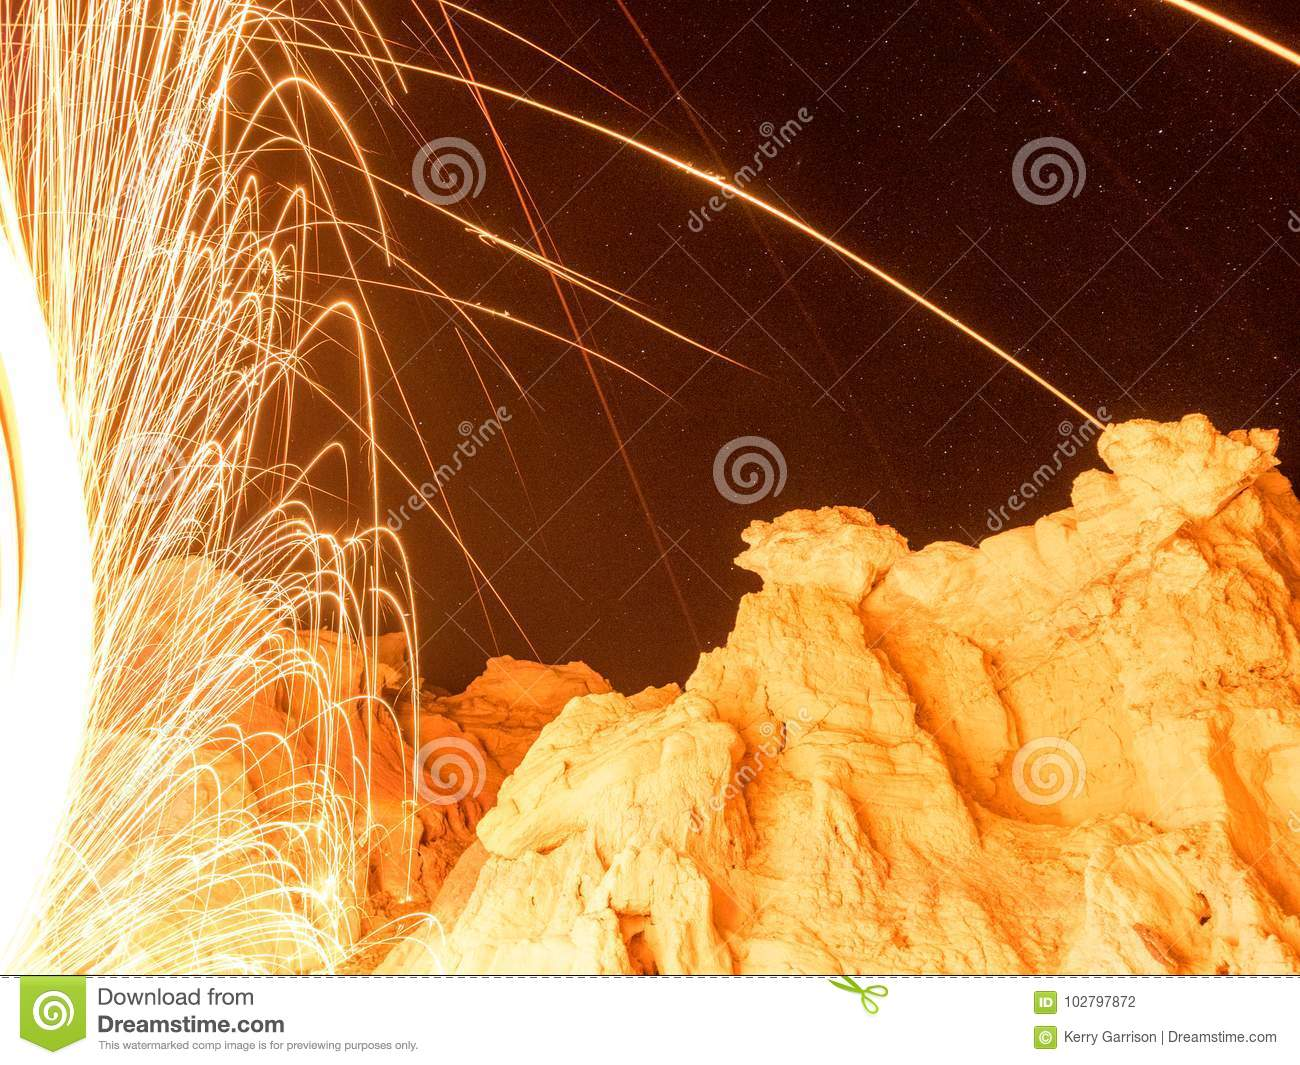 Spark from steel wool stock photo  Image of field, look - 102797872